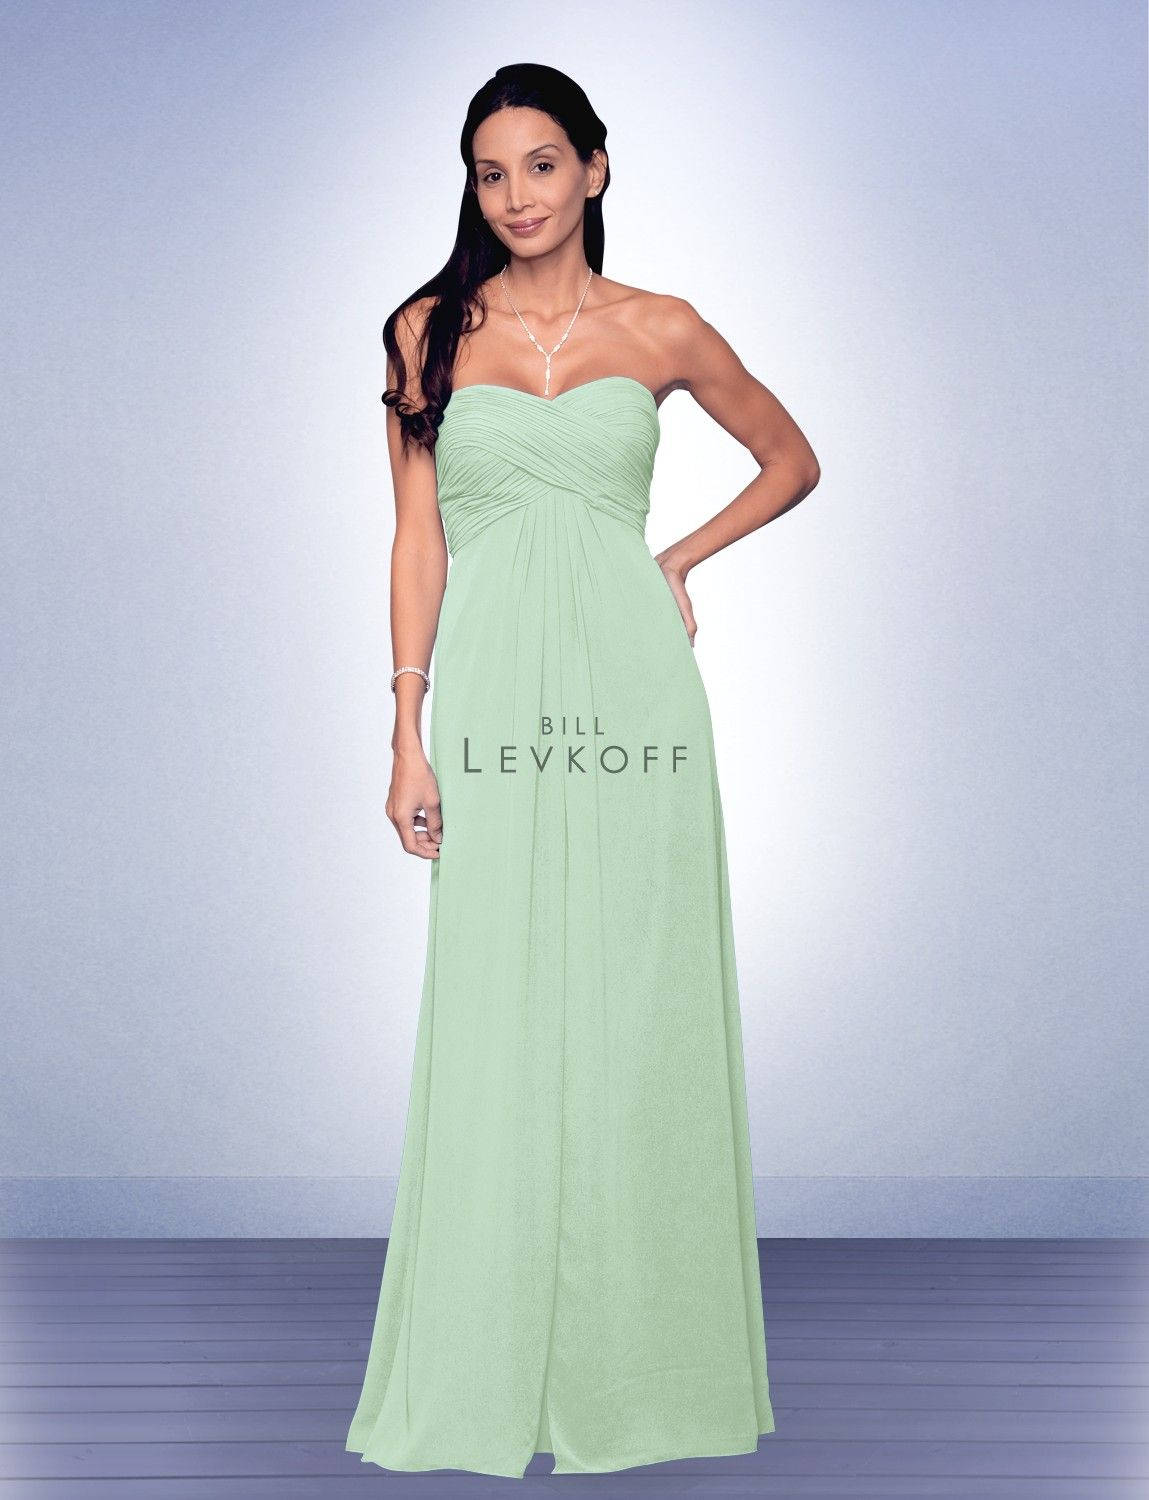 Bridesmaid dress style 537 bill levkoff mohs pistachio bridesmaid dress style 537 bill levkoff mohs pistachio bridesmaids clover ombrellifo Images